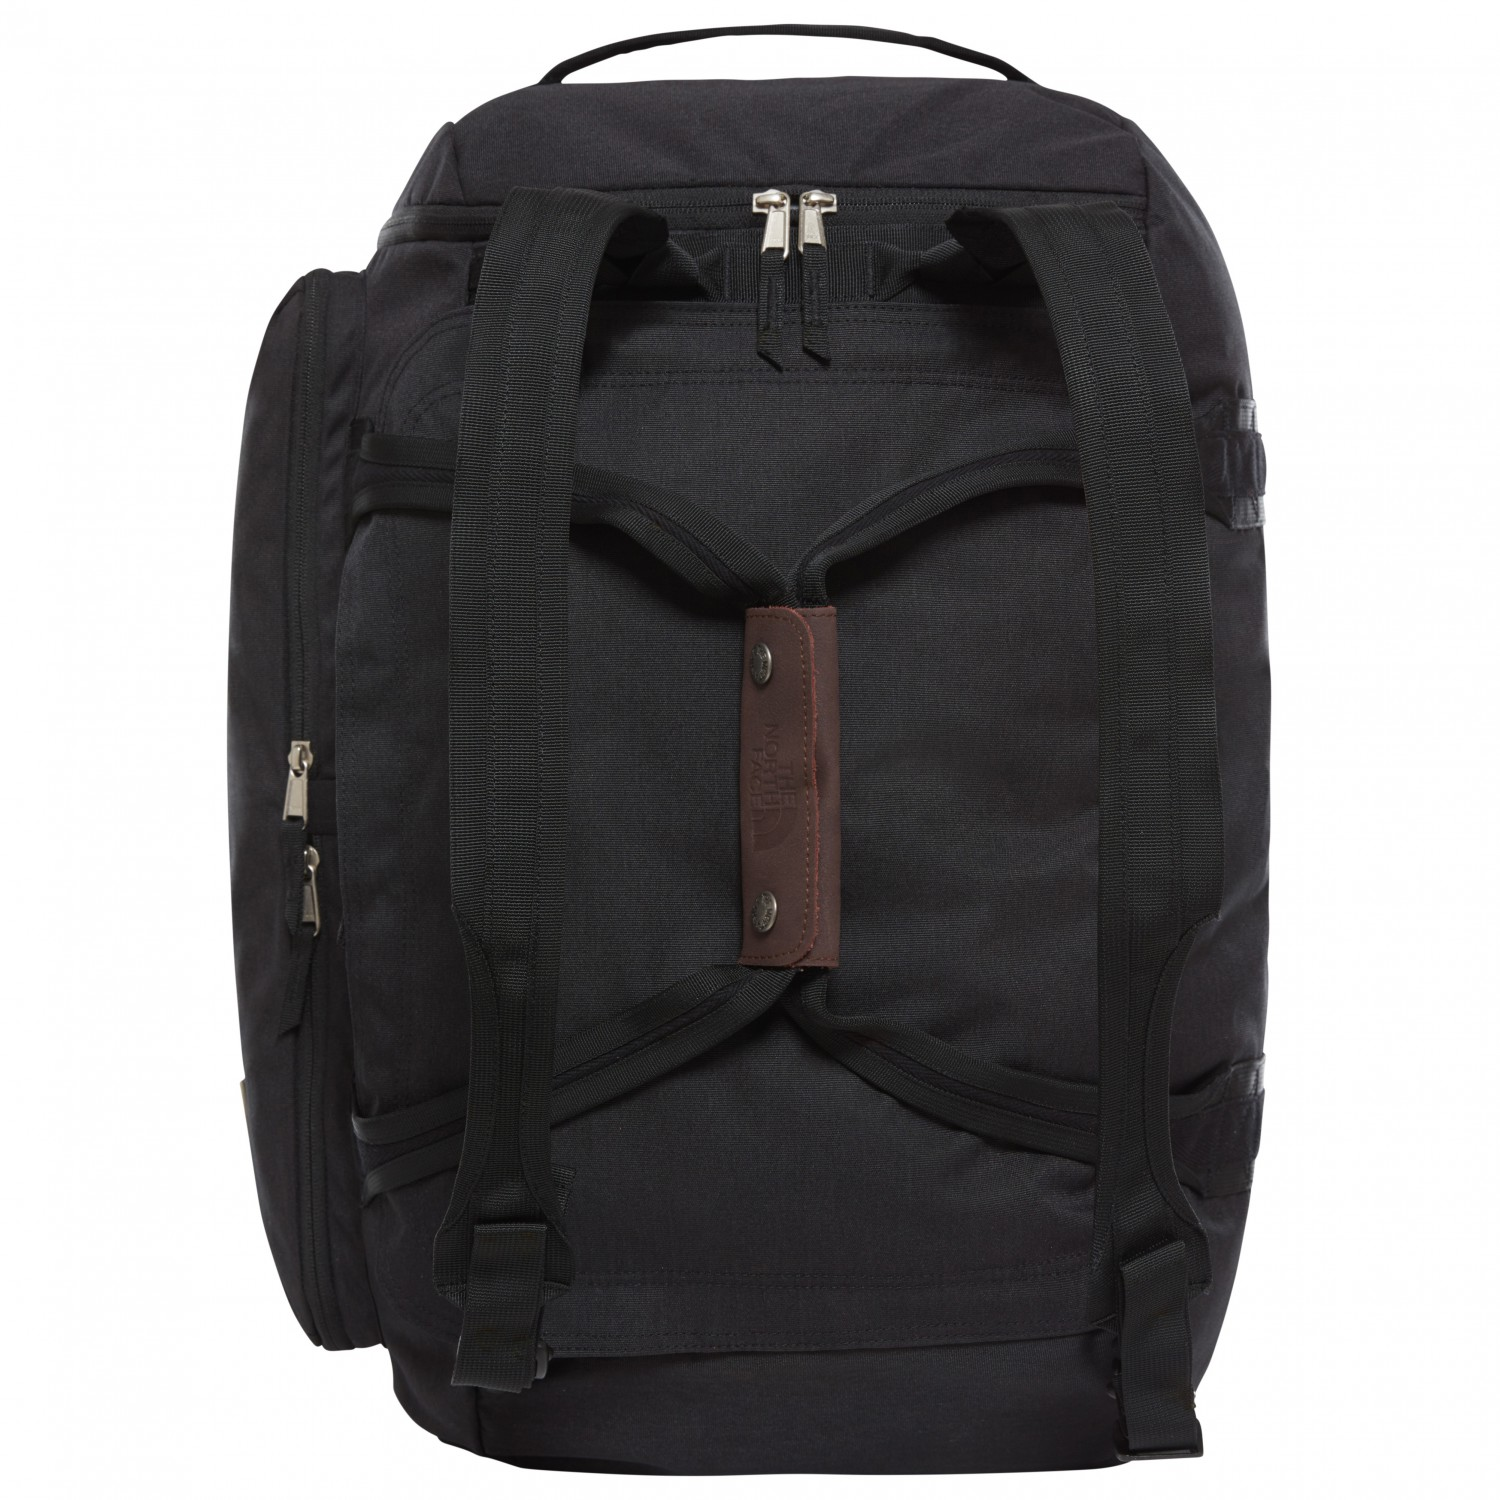 710f4a6a2 The North Face - Berkeley Duffel M 49 - Luggage - TNF Black Heather | 49 l